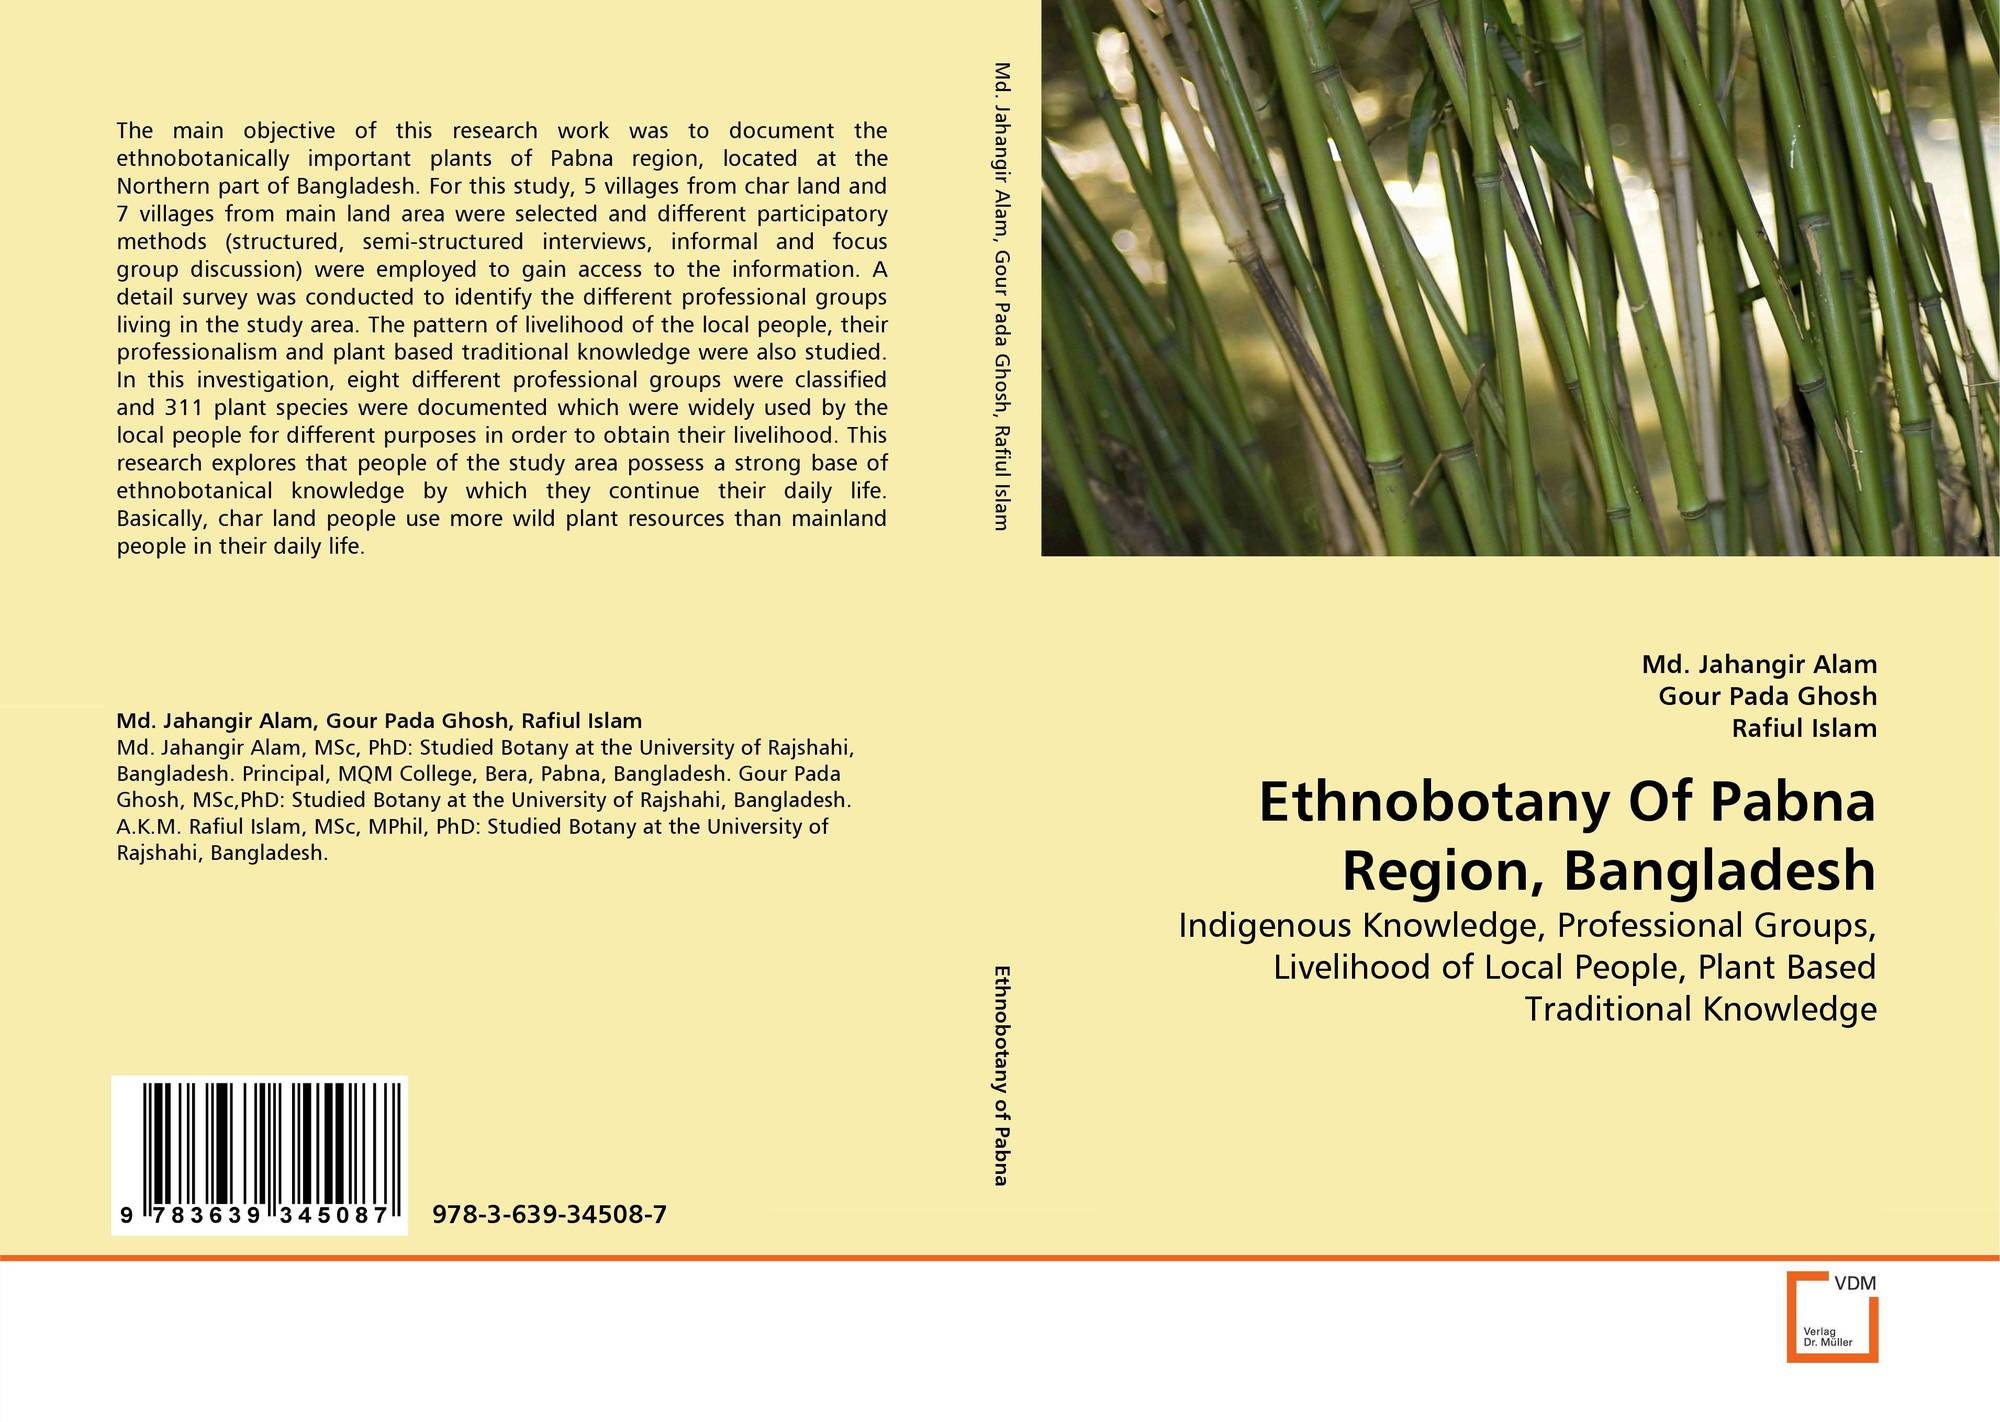 a study of plants called ethnobotany used for medical purposes 136 chapter 9 ethnobotany: the study of people  elucidating the cultural position of the tribes who used the plants for food  discoveries in medical ethnobotany through the application of.